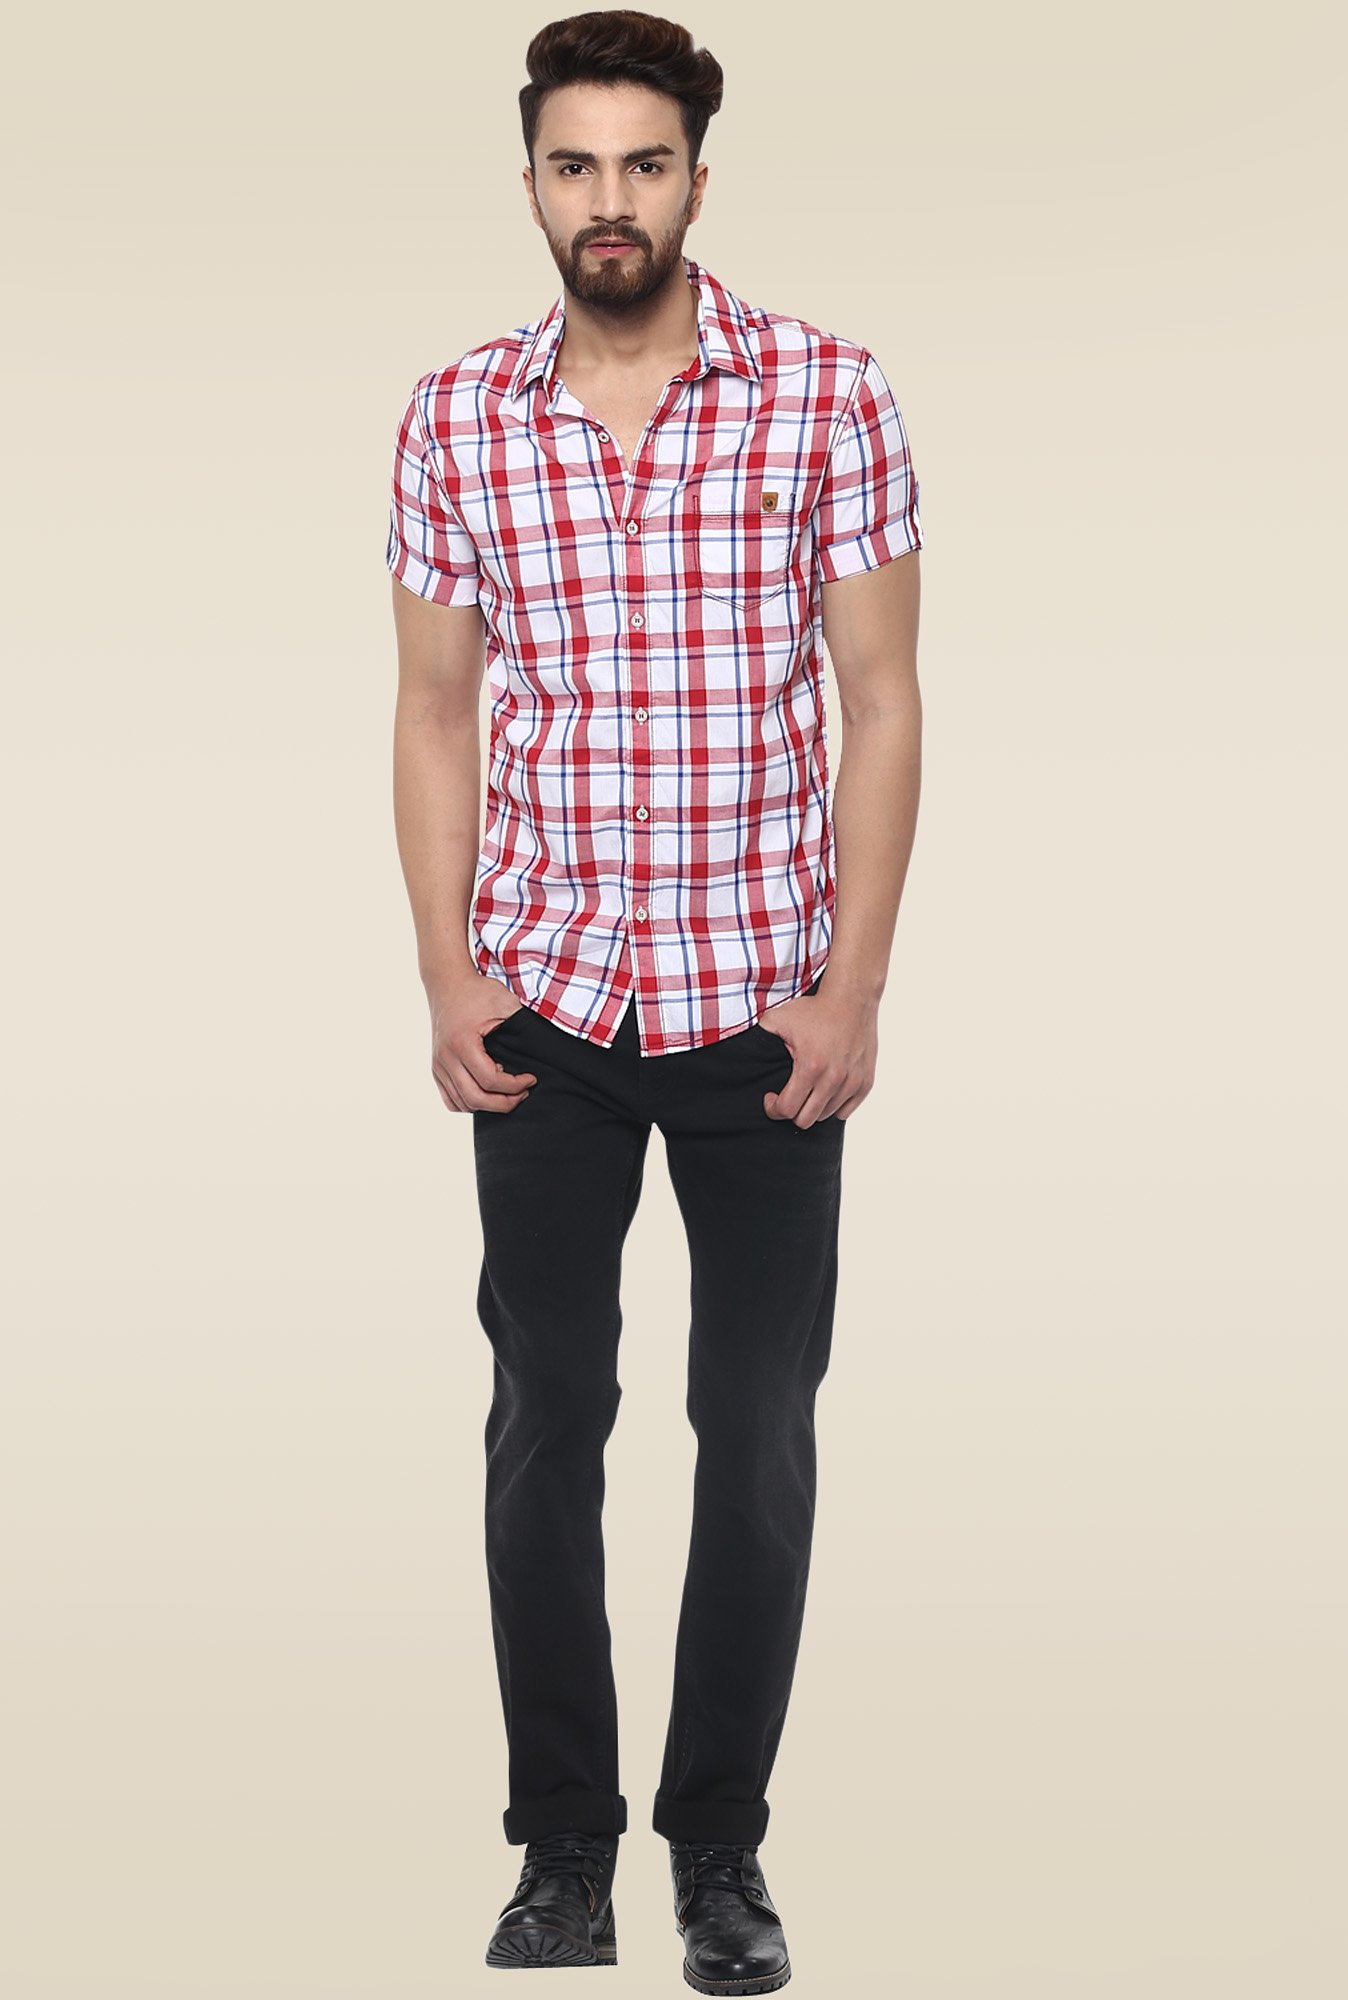 851360ea Buy Mufti White & Red Cotton Checkered Shirt for Men Online @ Tata ...